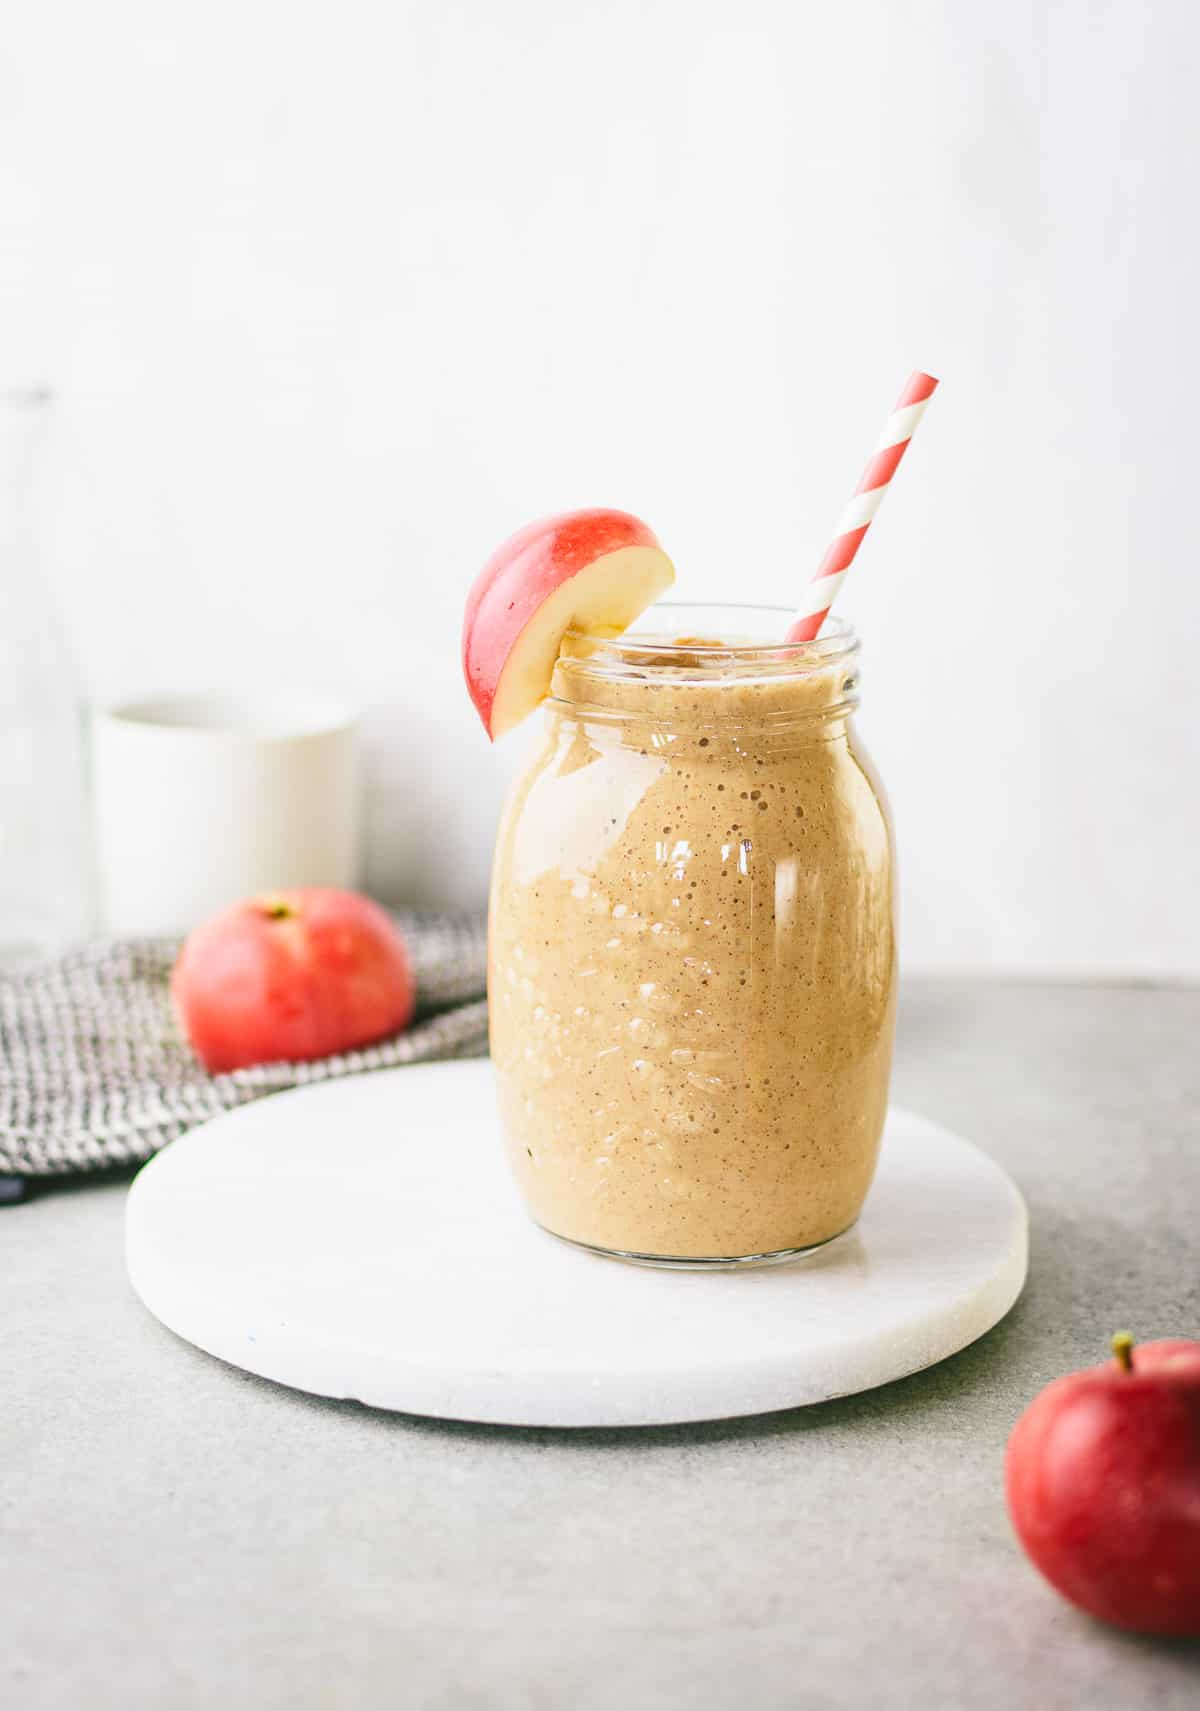 Apple pie smoothie in a glass jar, apple slice and a red stipe straw.